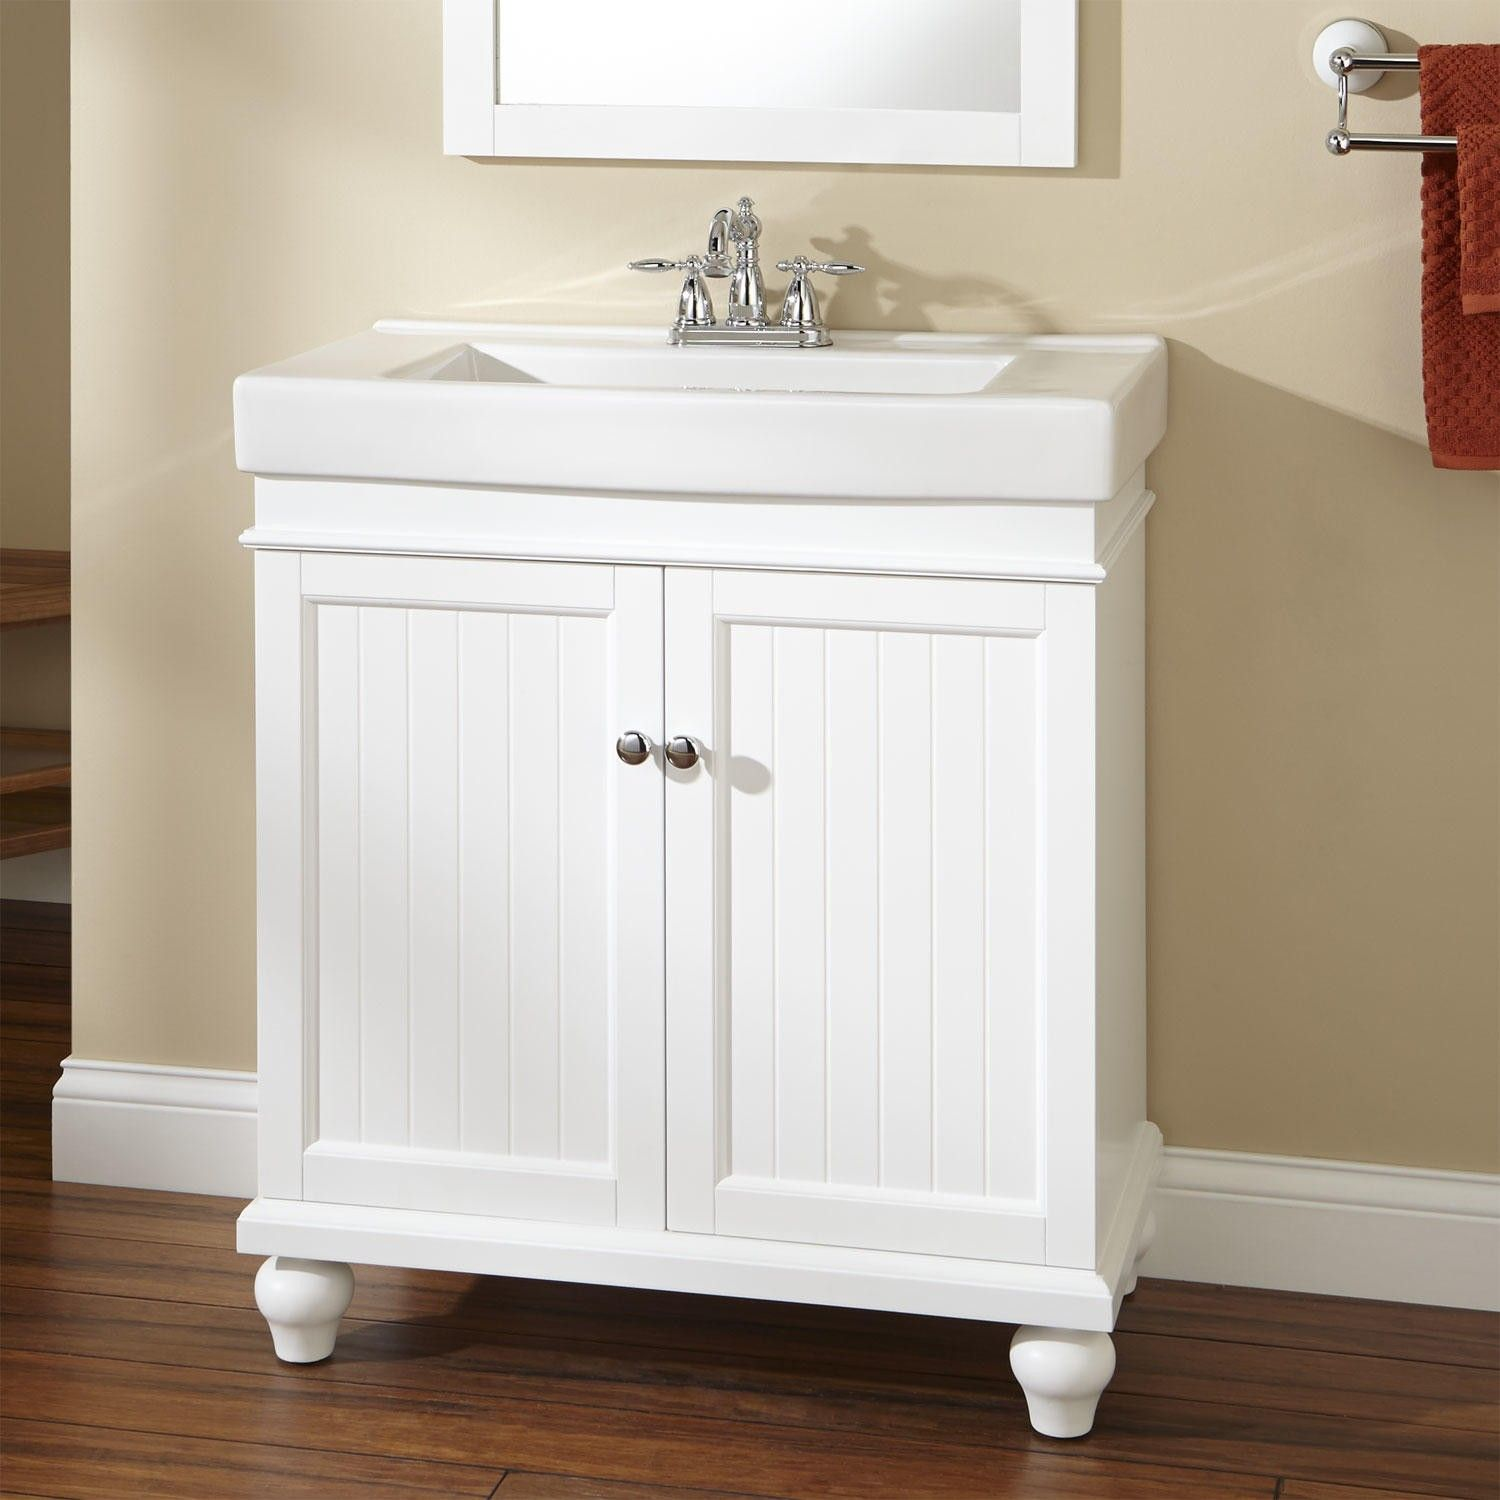 Best 30 Lander Vanity Cabinet White 16 Inches Deep 30 640 x 480